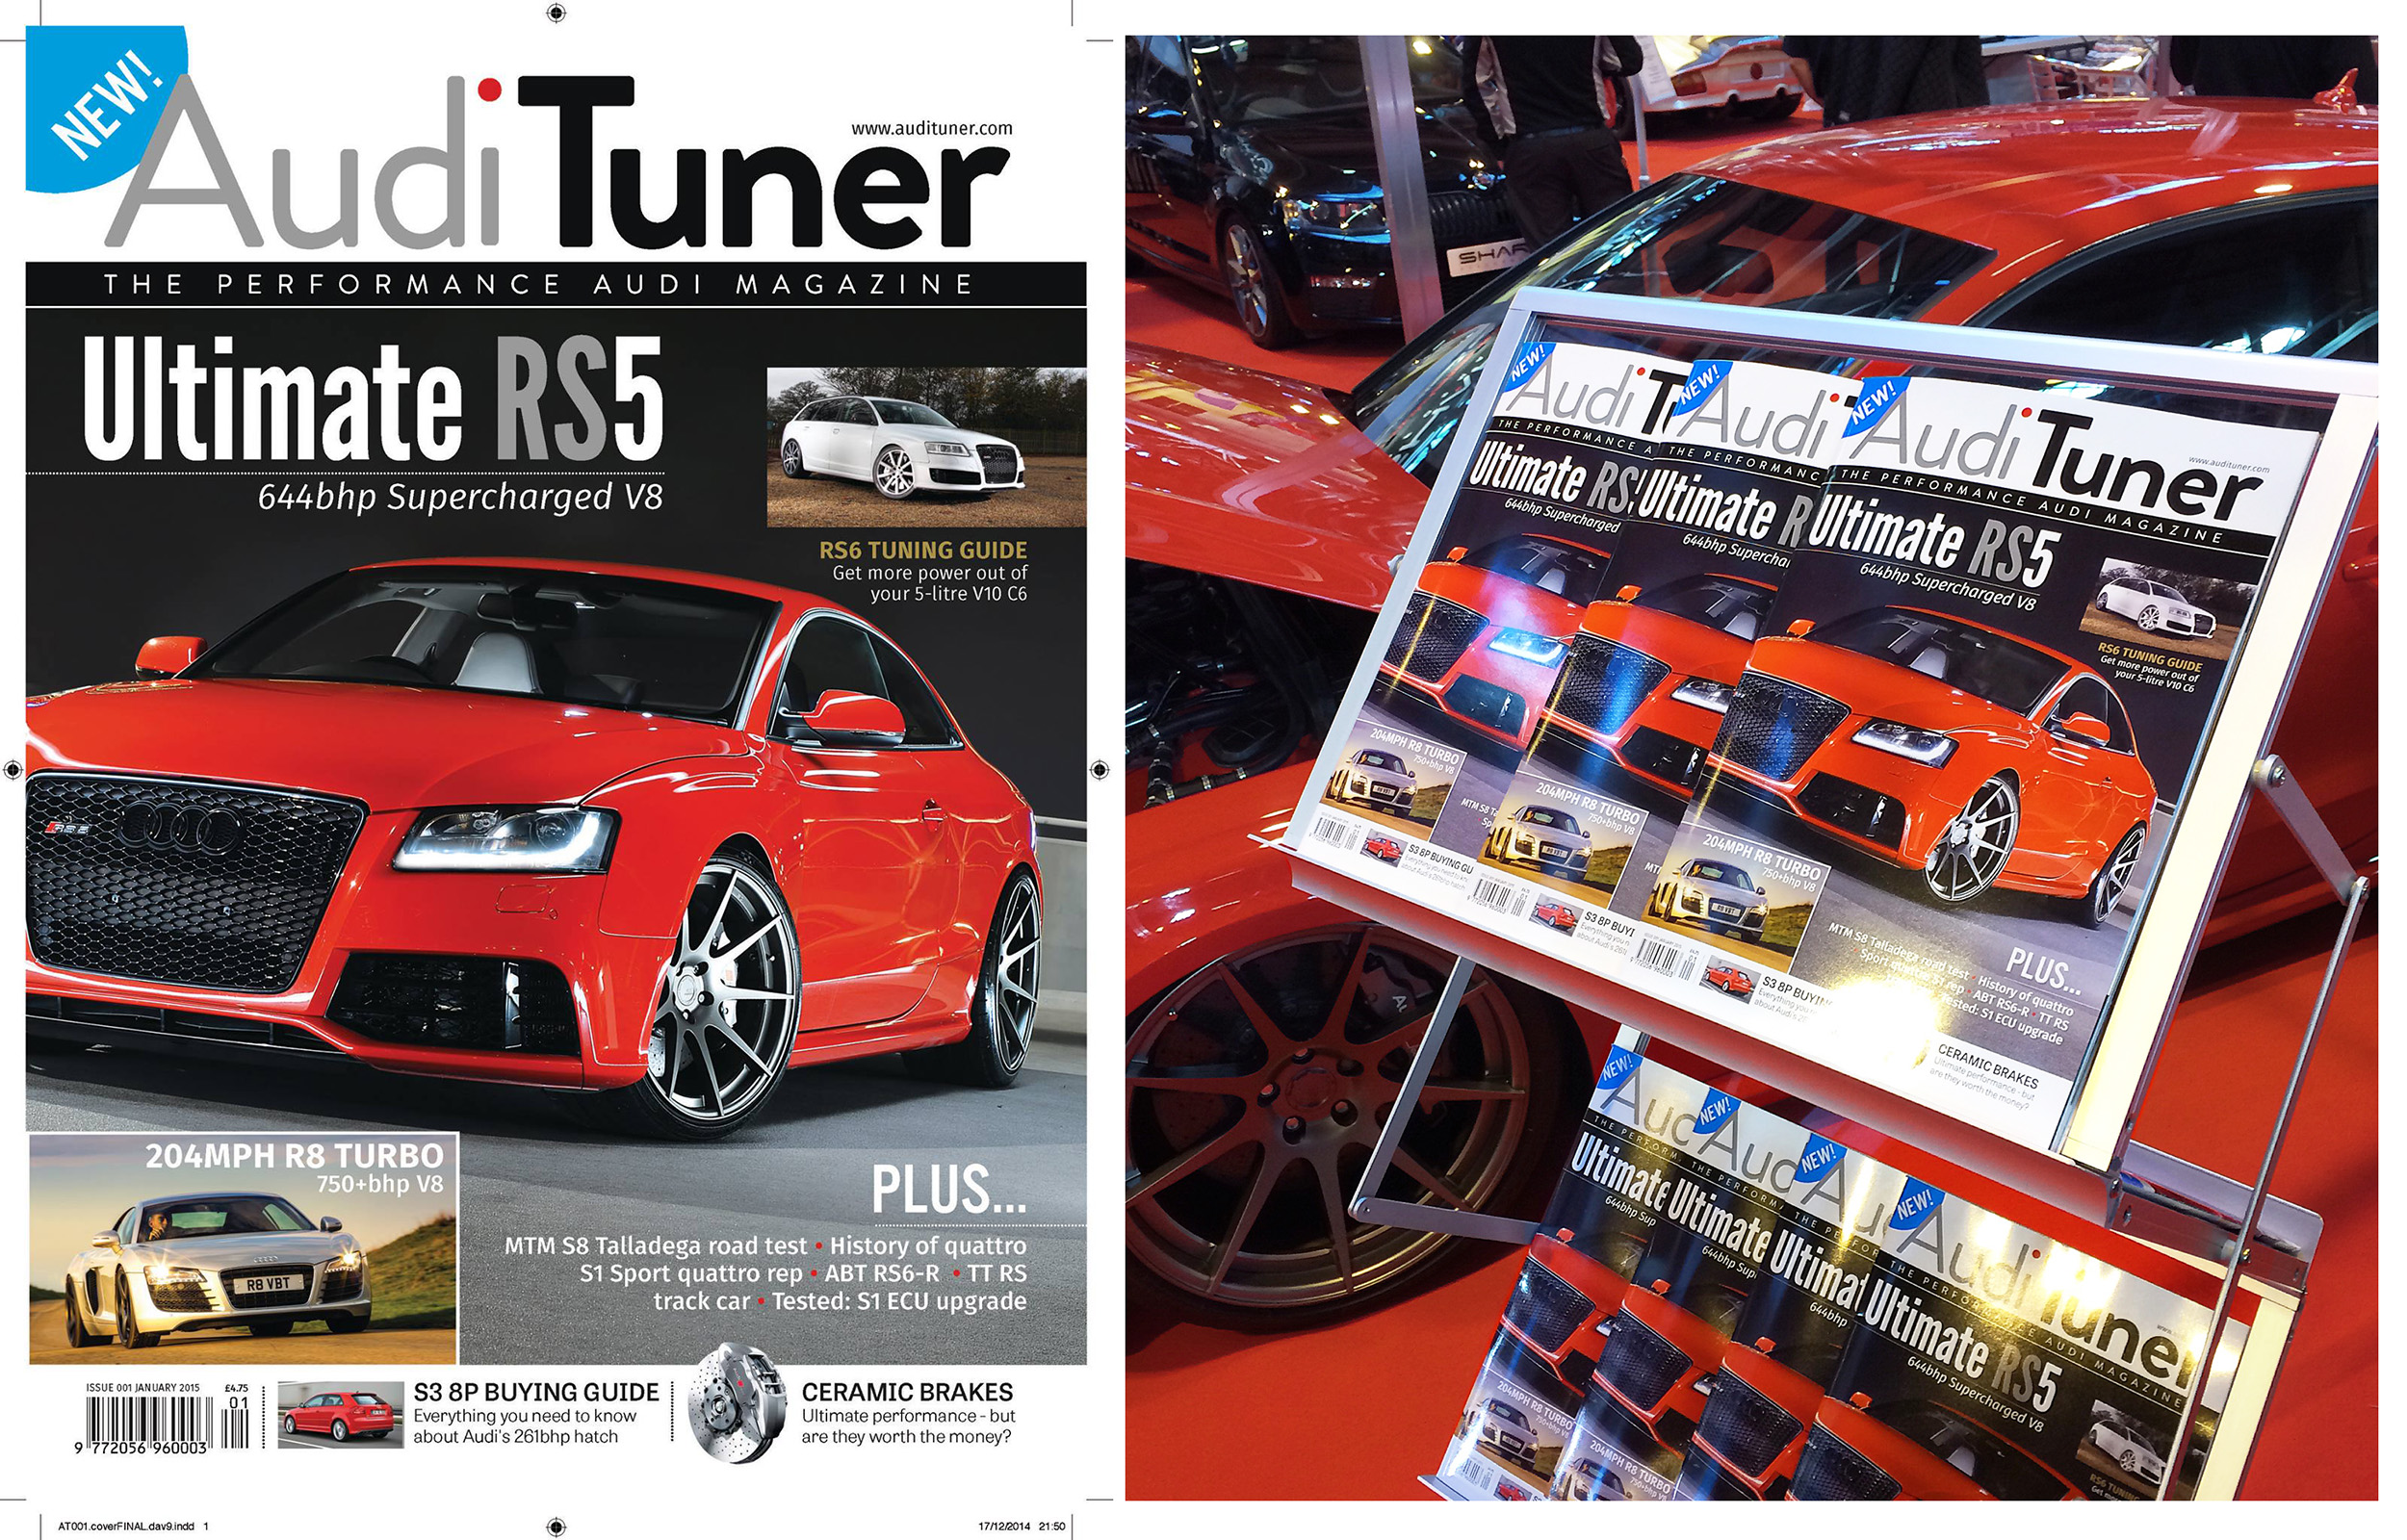 The launch issue of Audi Tuner was on displayat the Autosport 2015 show.